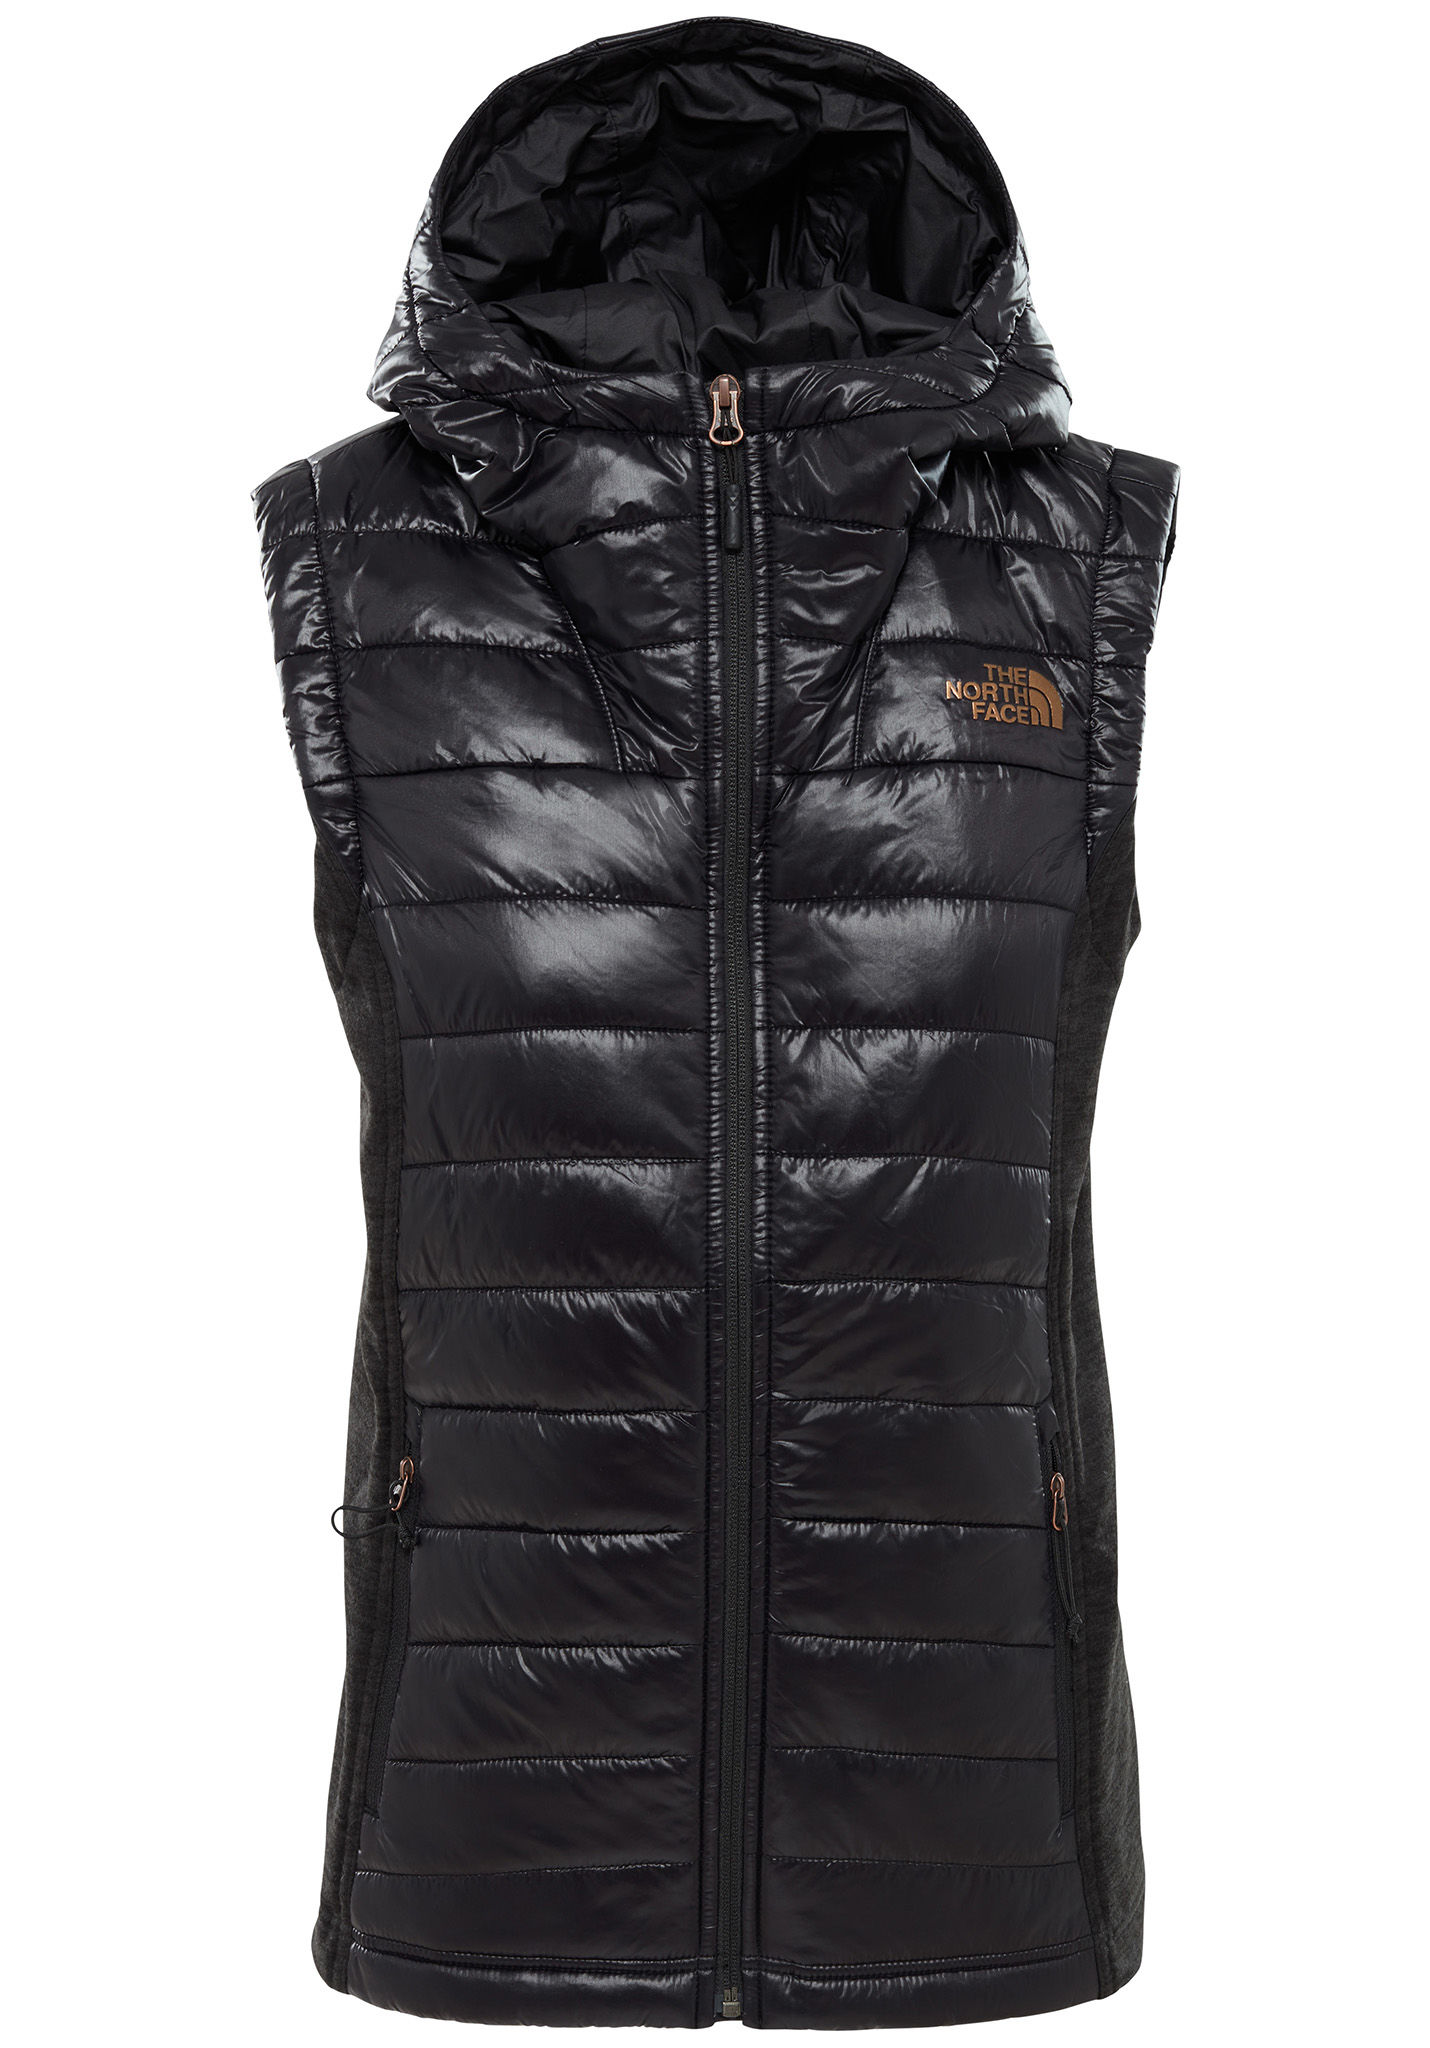 93a99d89d THE NORTH FACE Mashup Pl Vst - Vest for Women - Black